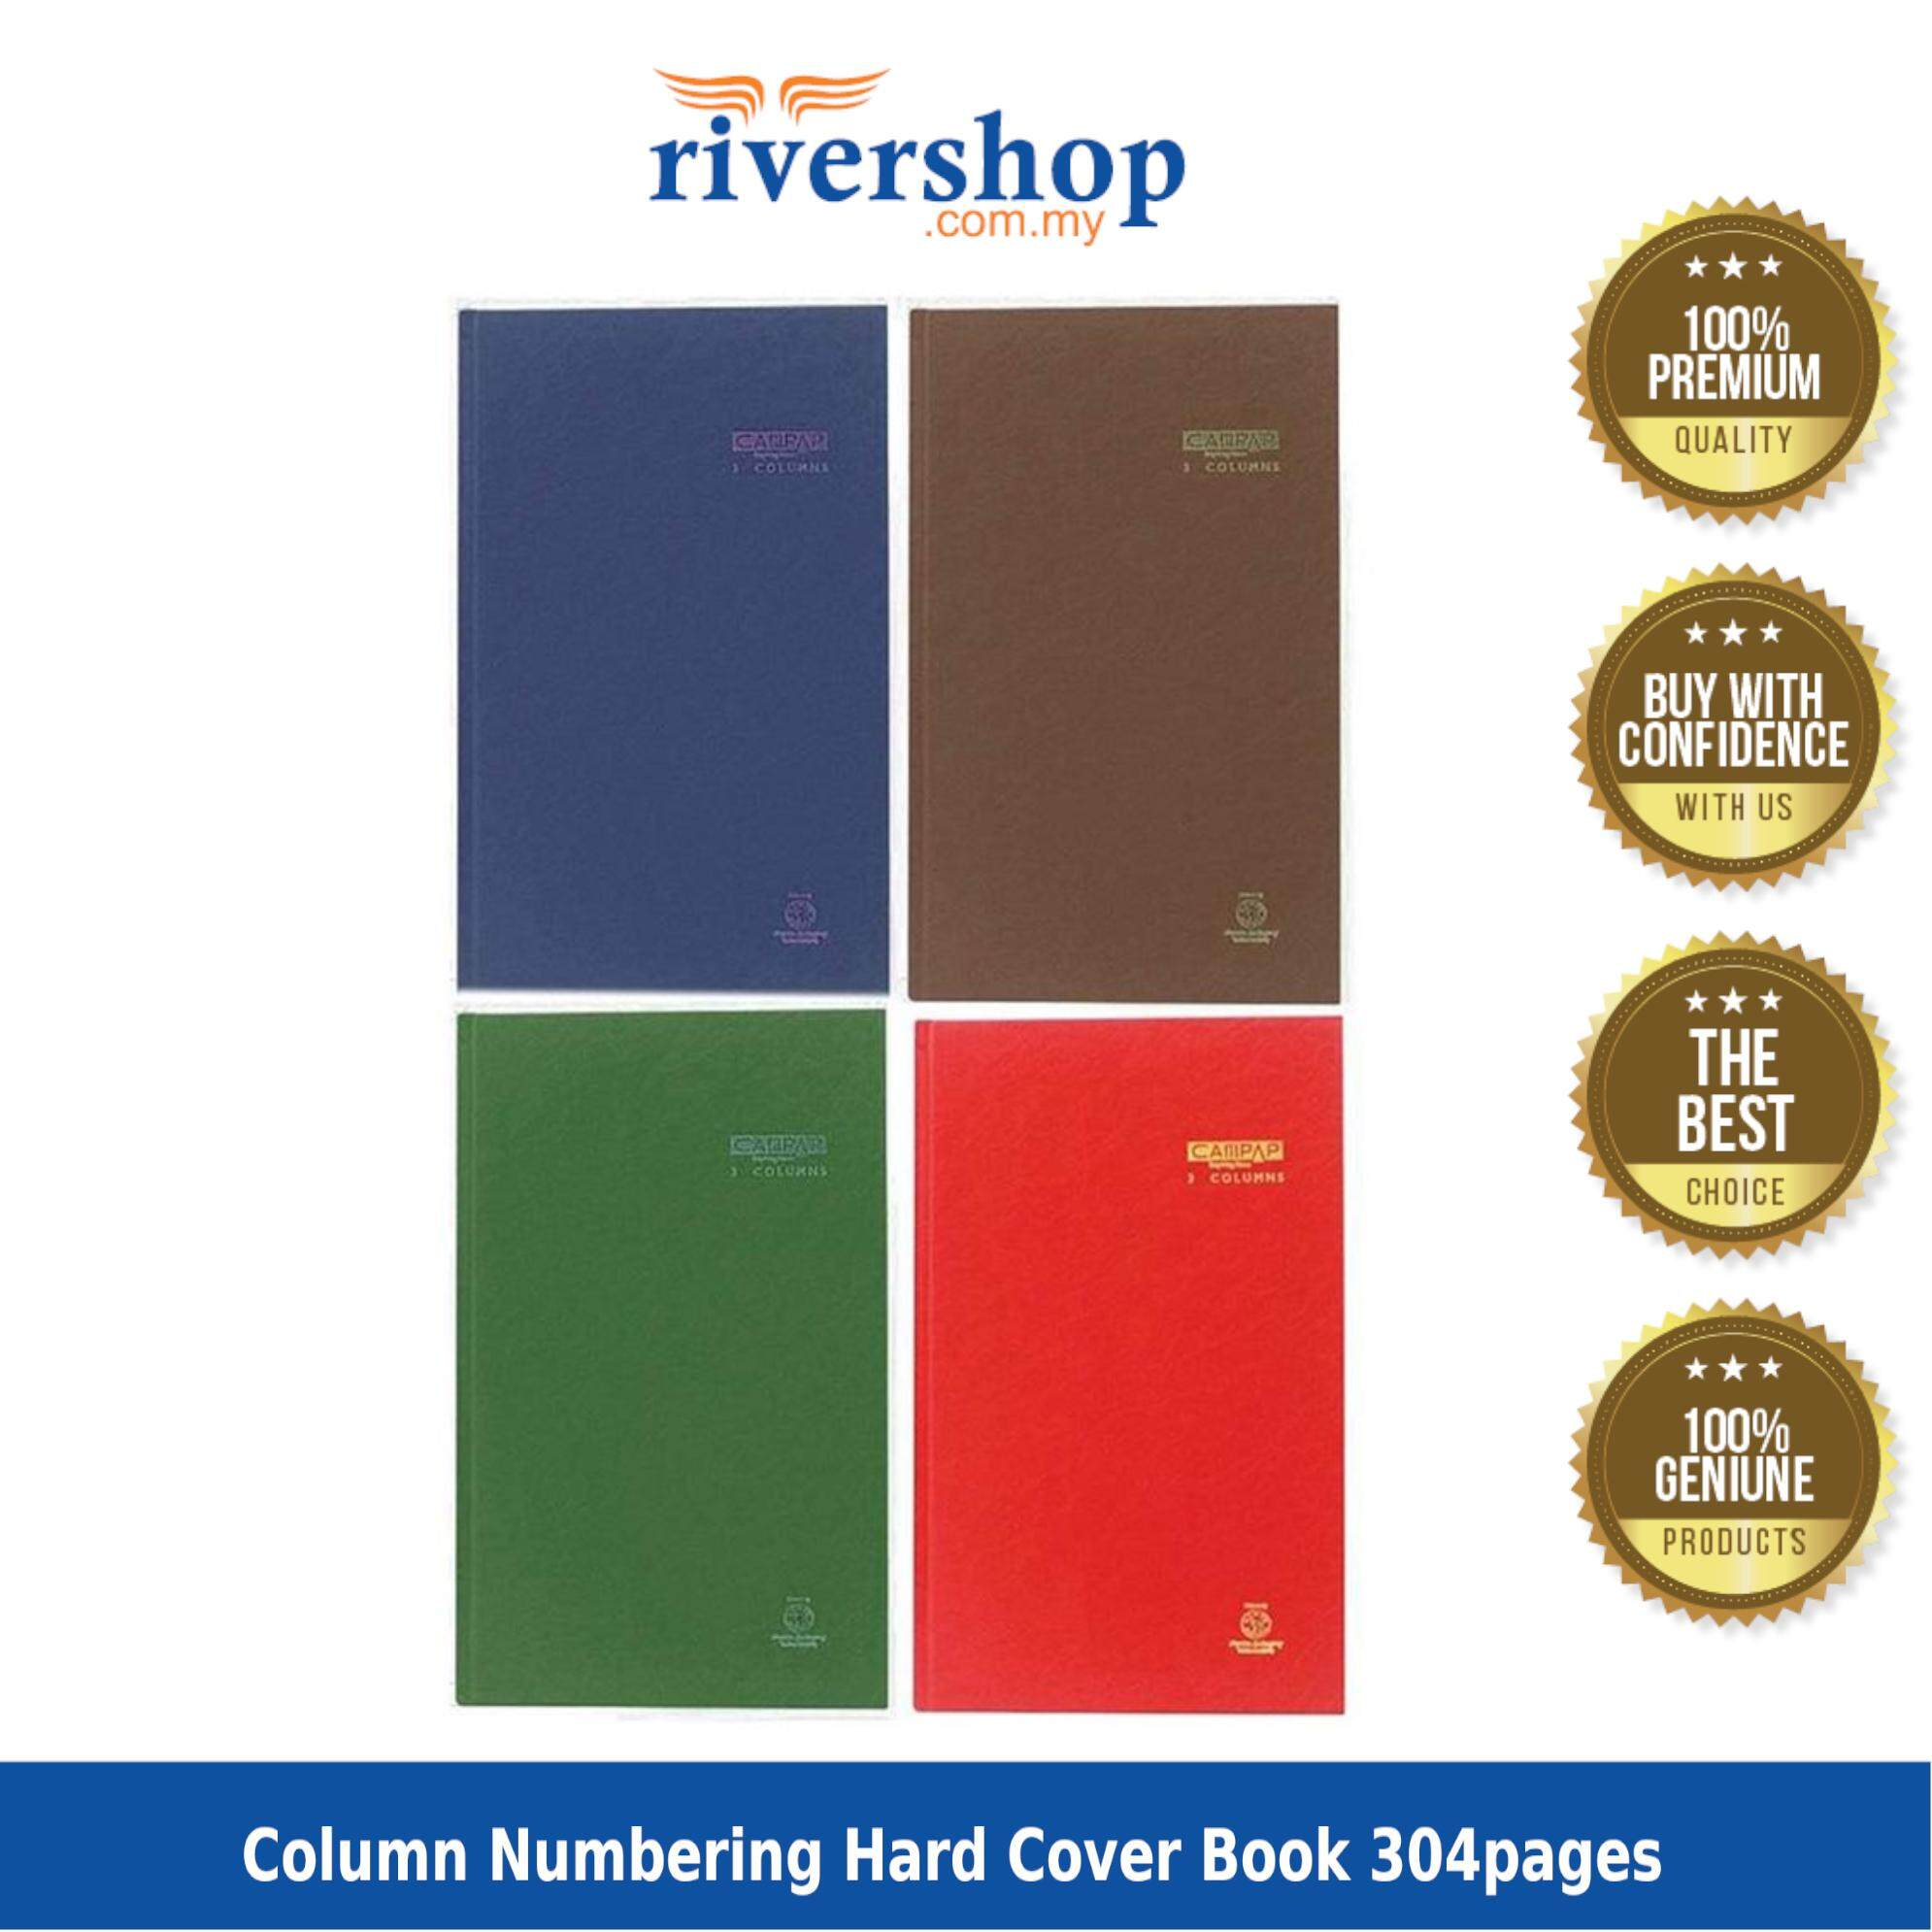 Campap CA3132 F4 3 Column Numbering Hard Cover Book 304pages